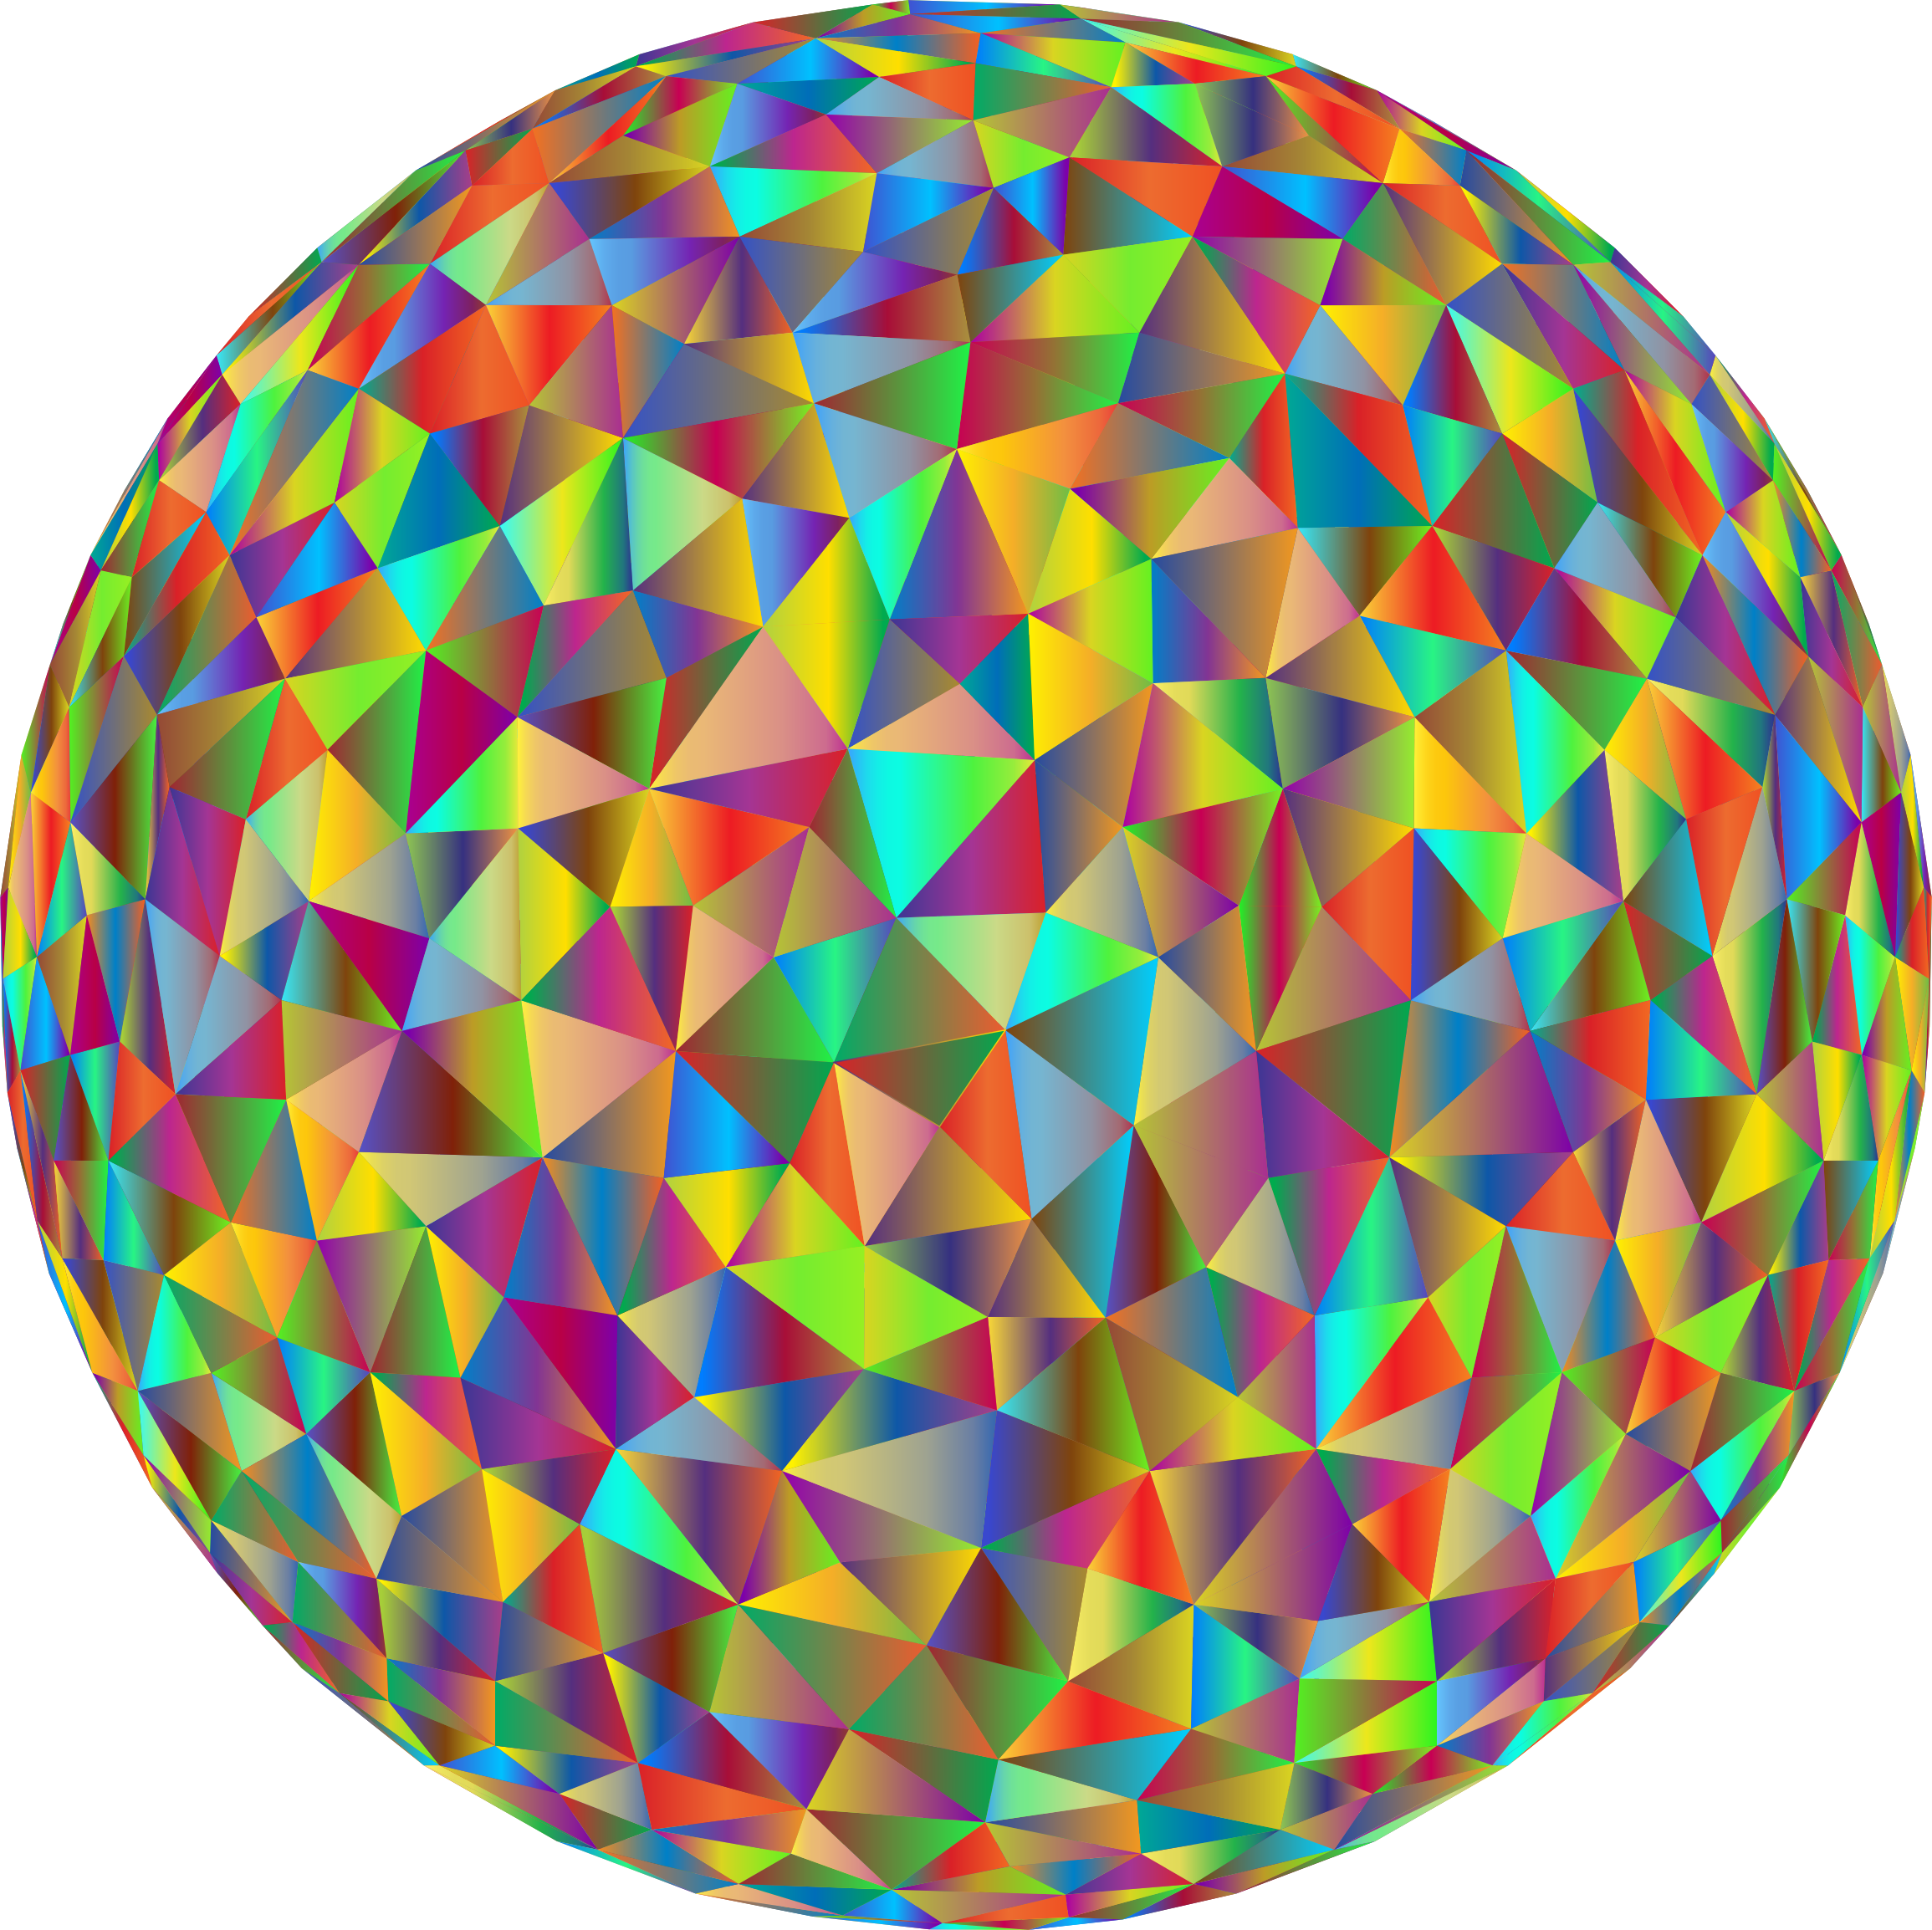 Prismatic Low Poly Sphere 3 by GDJ